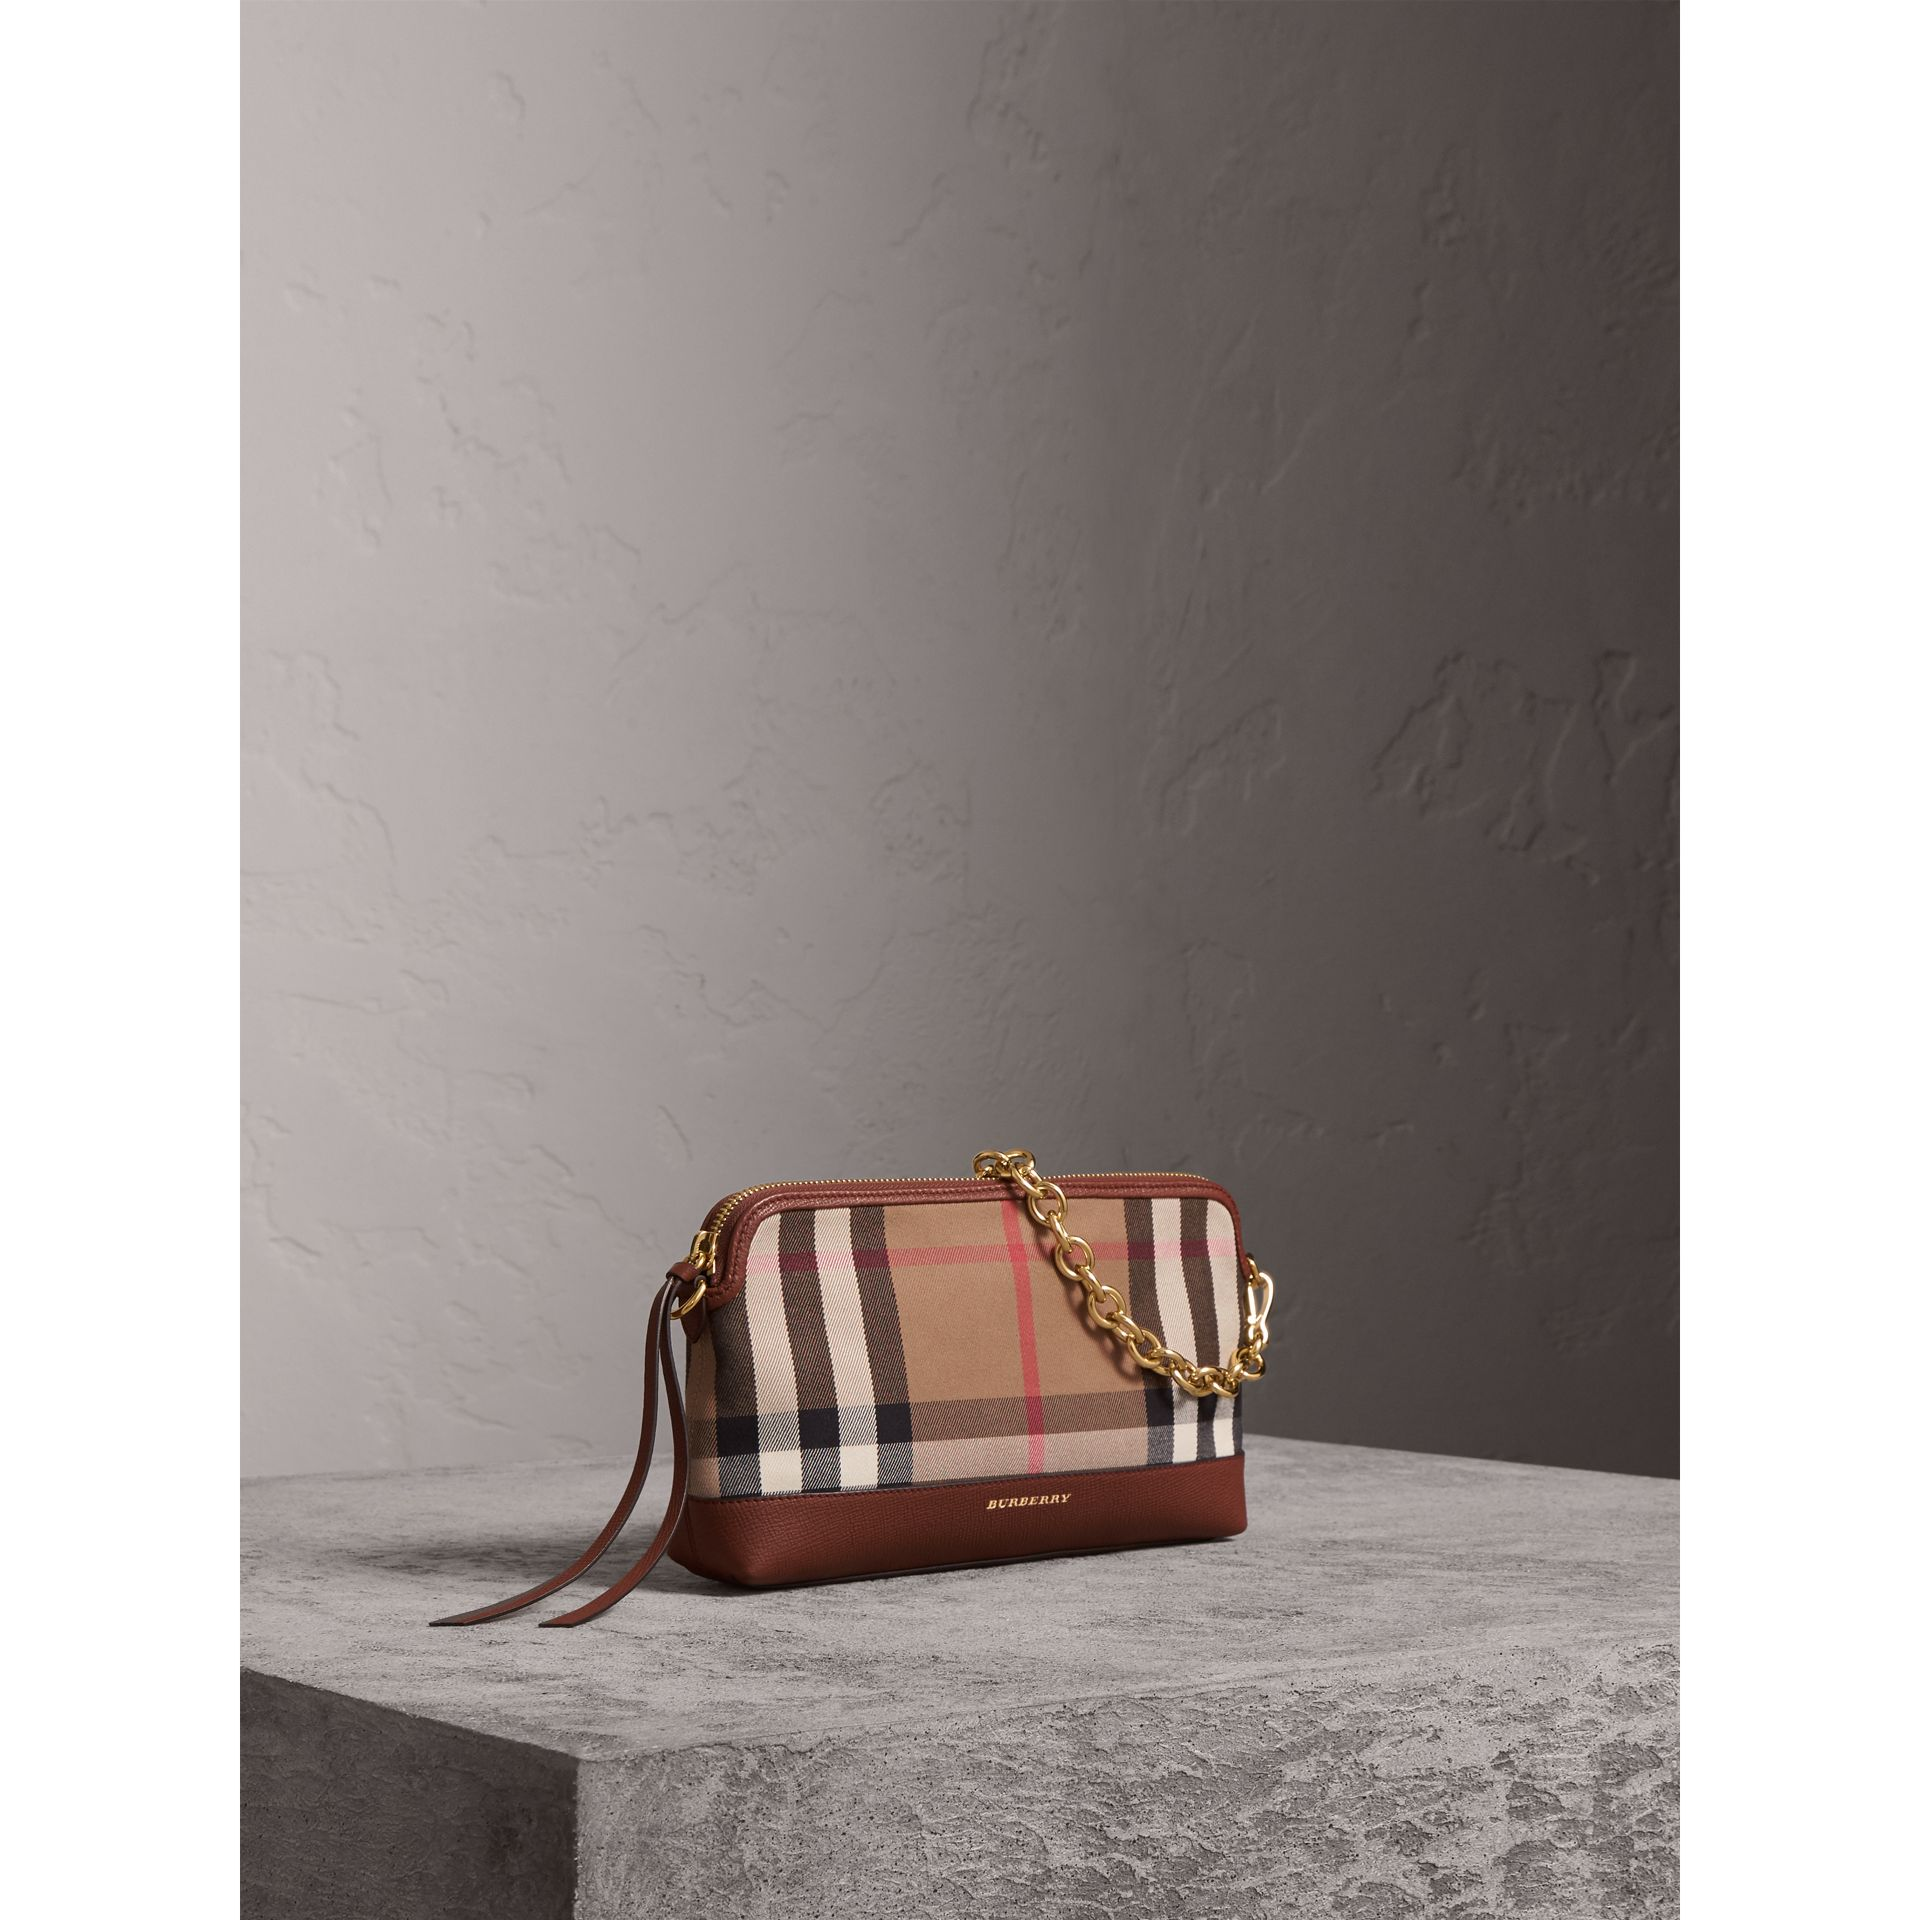 House Check and Leather Clutch Bag in Tan - Women | Burberry - gallery image 8